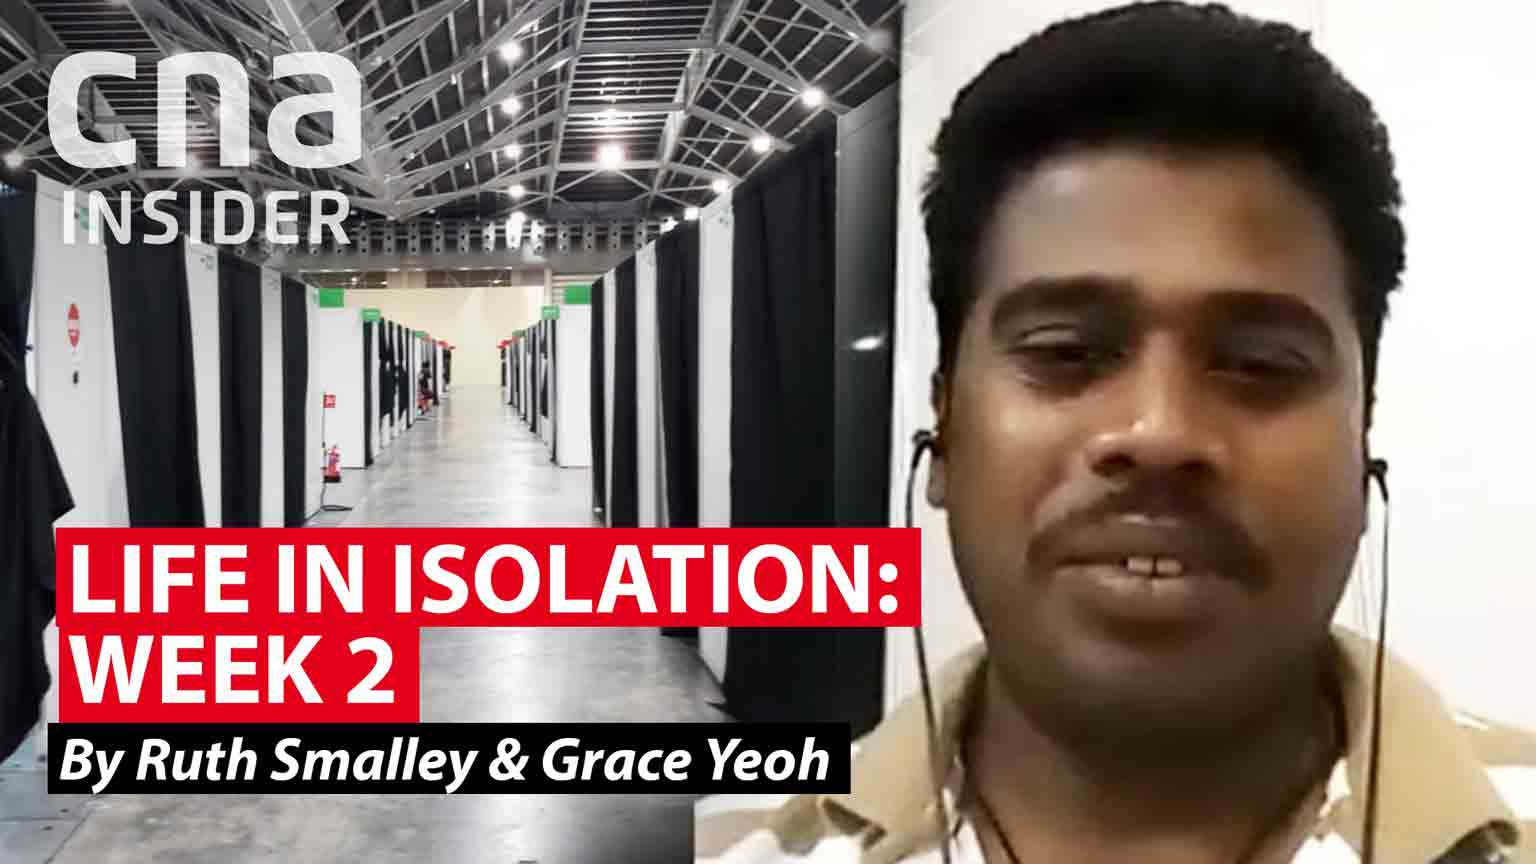 Life in isolation - when a migrant worker gets COVID-19 in Singapore